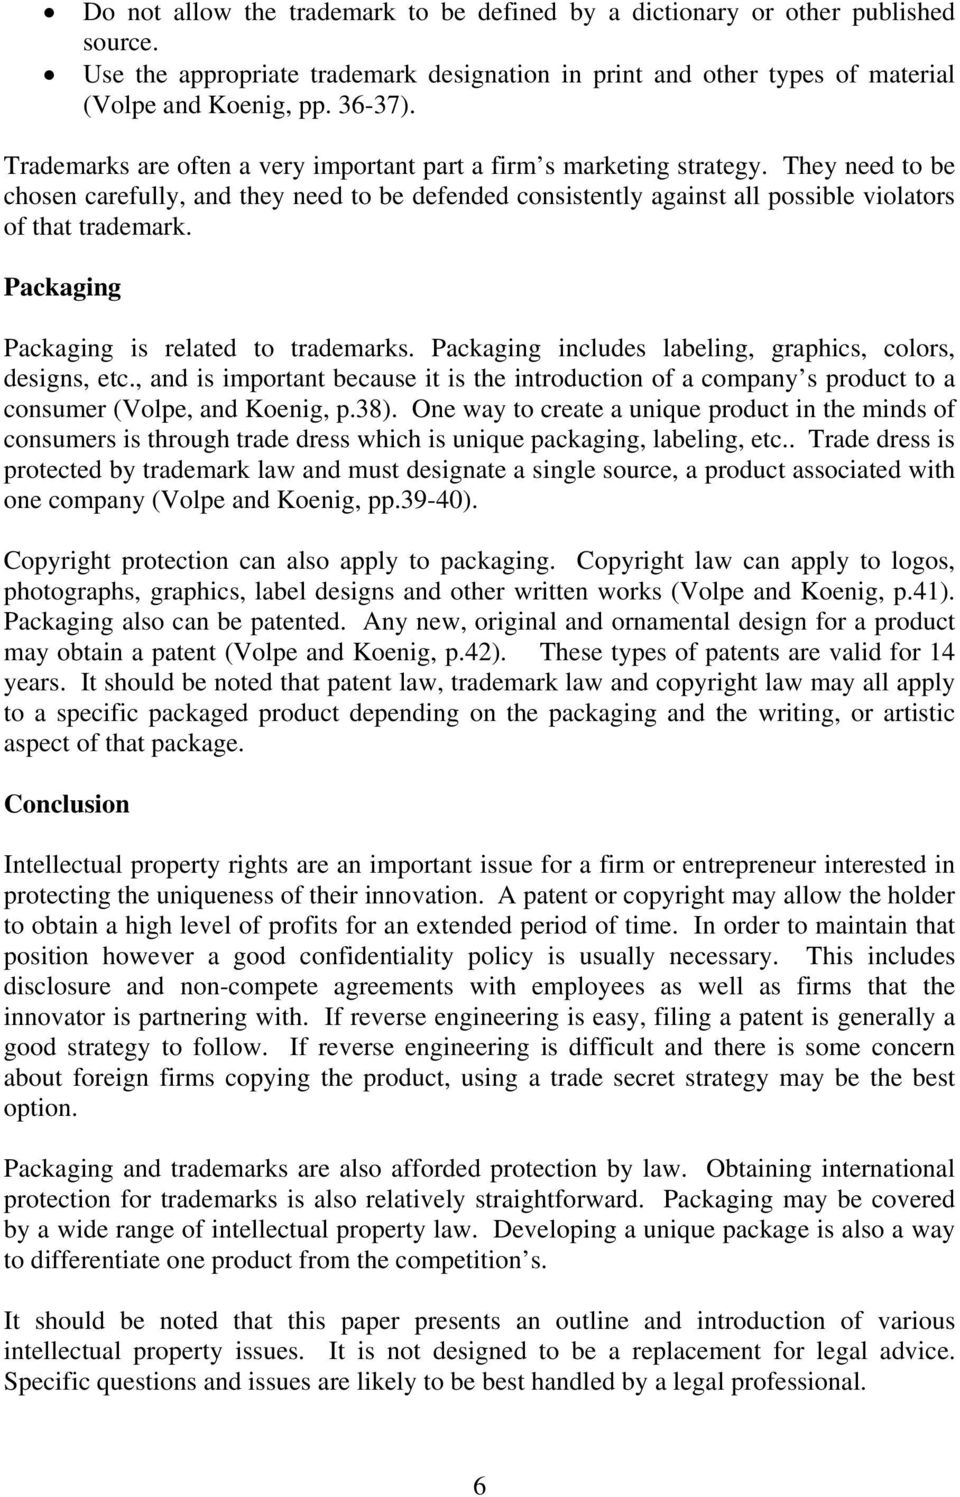 Packaging Packaging is related to trademarks. Packaging includes labeling, graphics, colors, designs, etc.